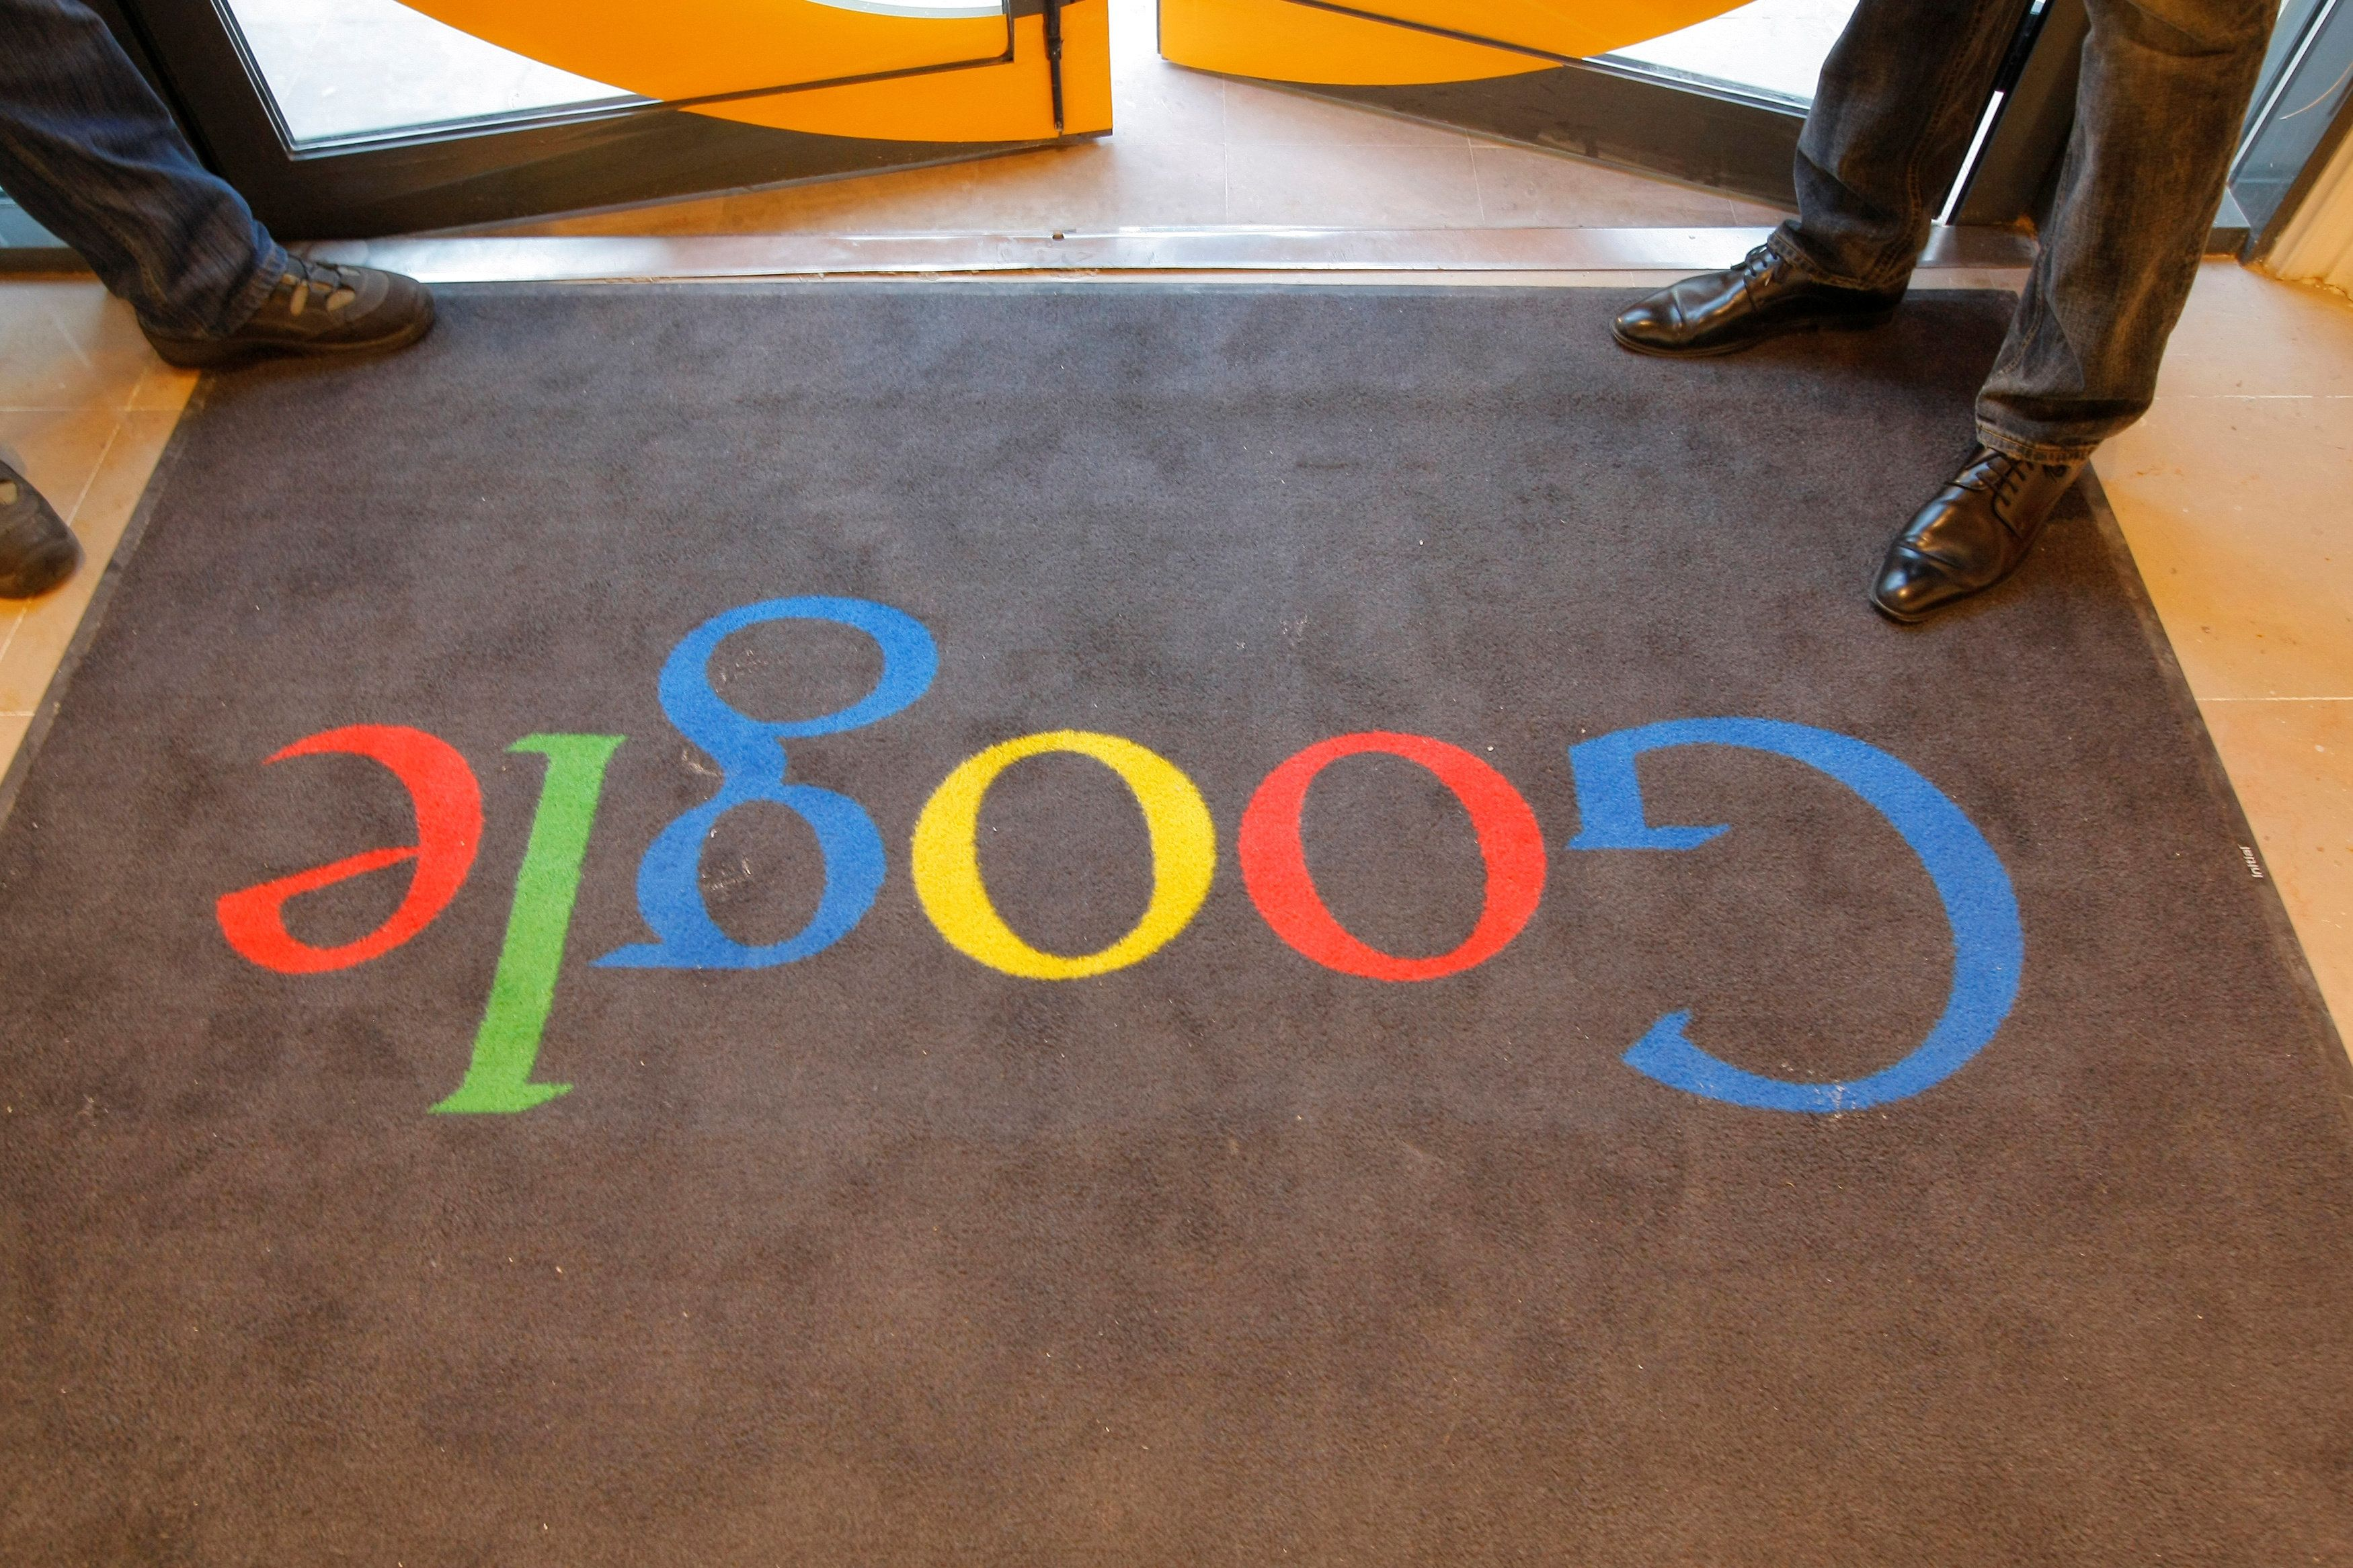 Google won't renew its U.S. Defense Department contract in 2019